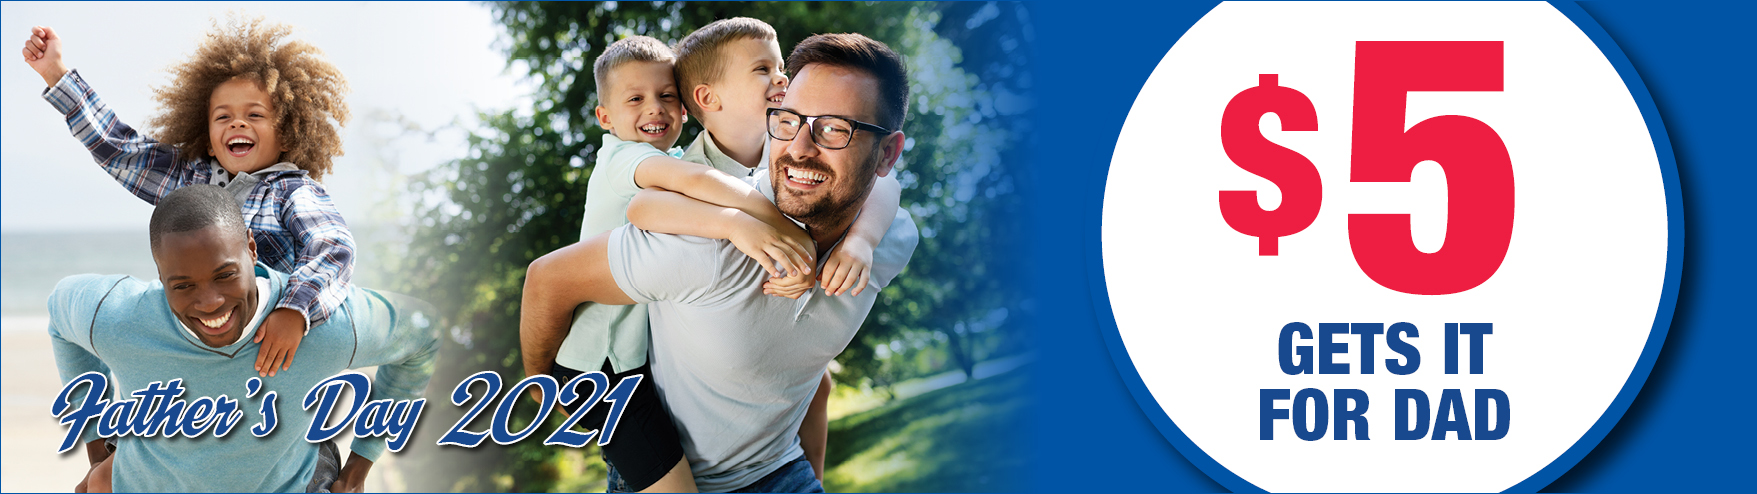 My Family Home Furnishings, located in Oak Grove, KY serves Clarksville and the surrounding area with high quality furniture, appliances and electronics at unbeatable prices.